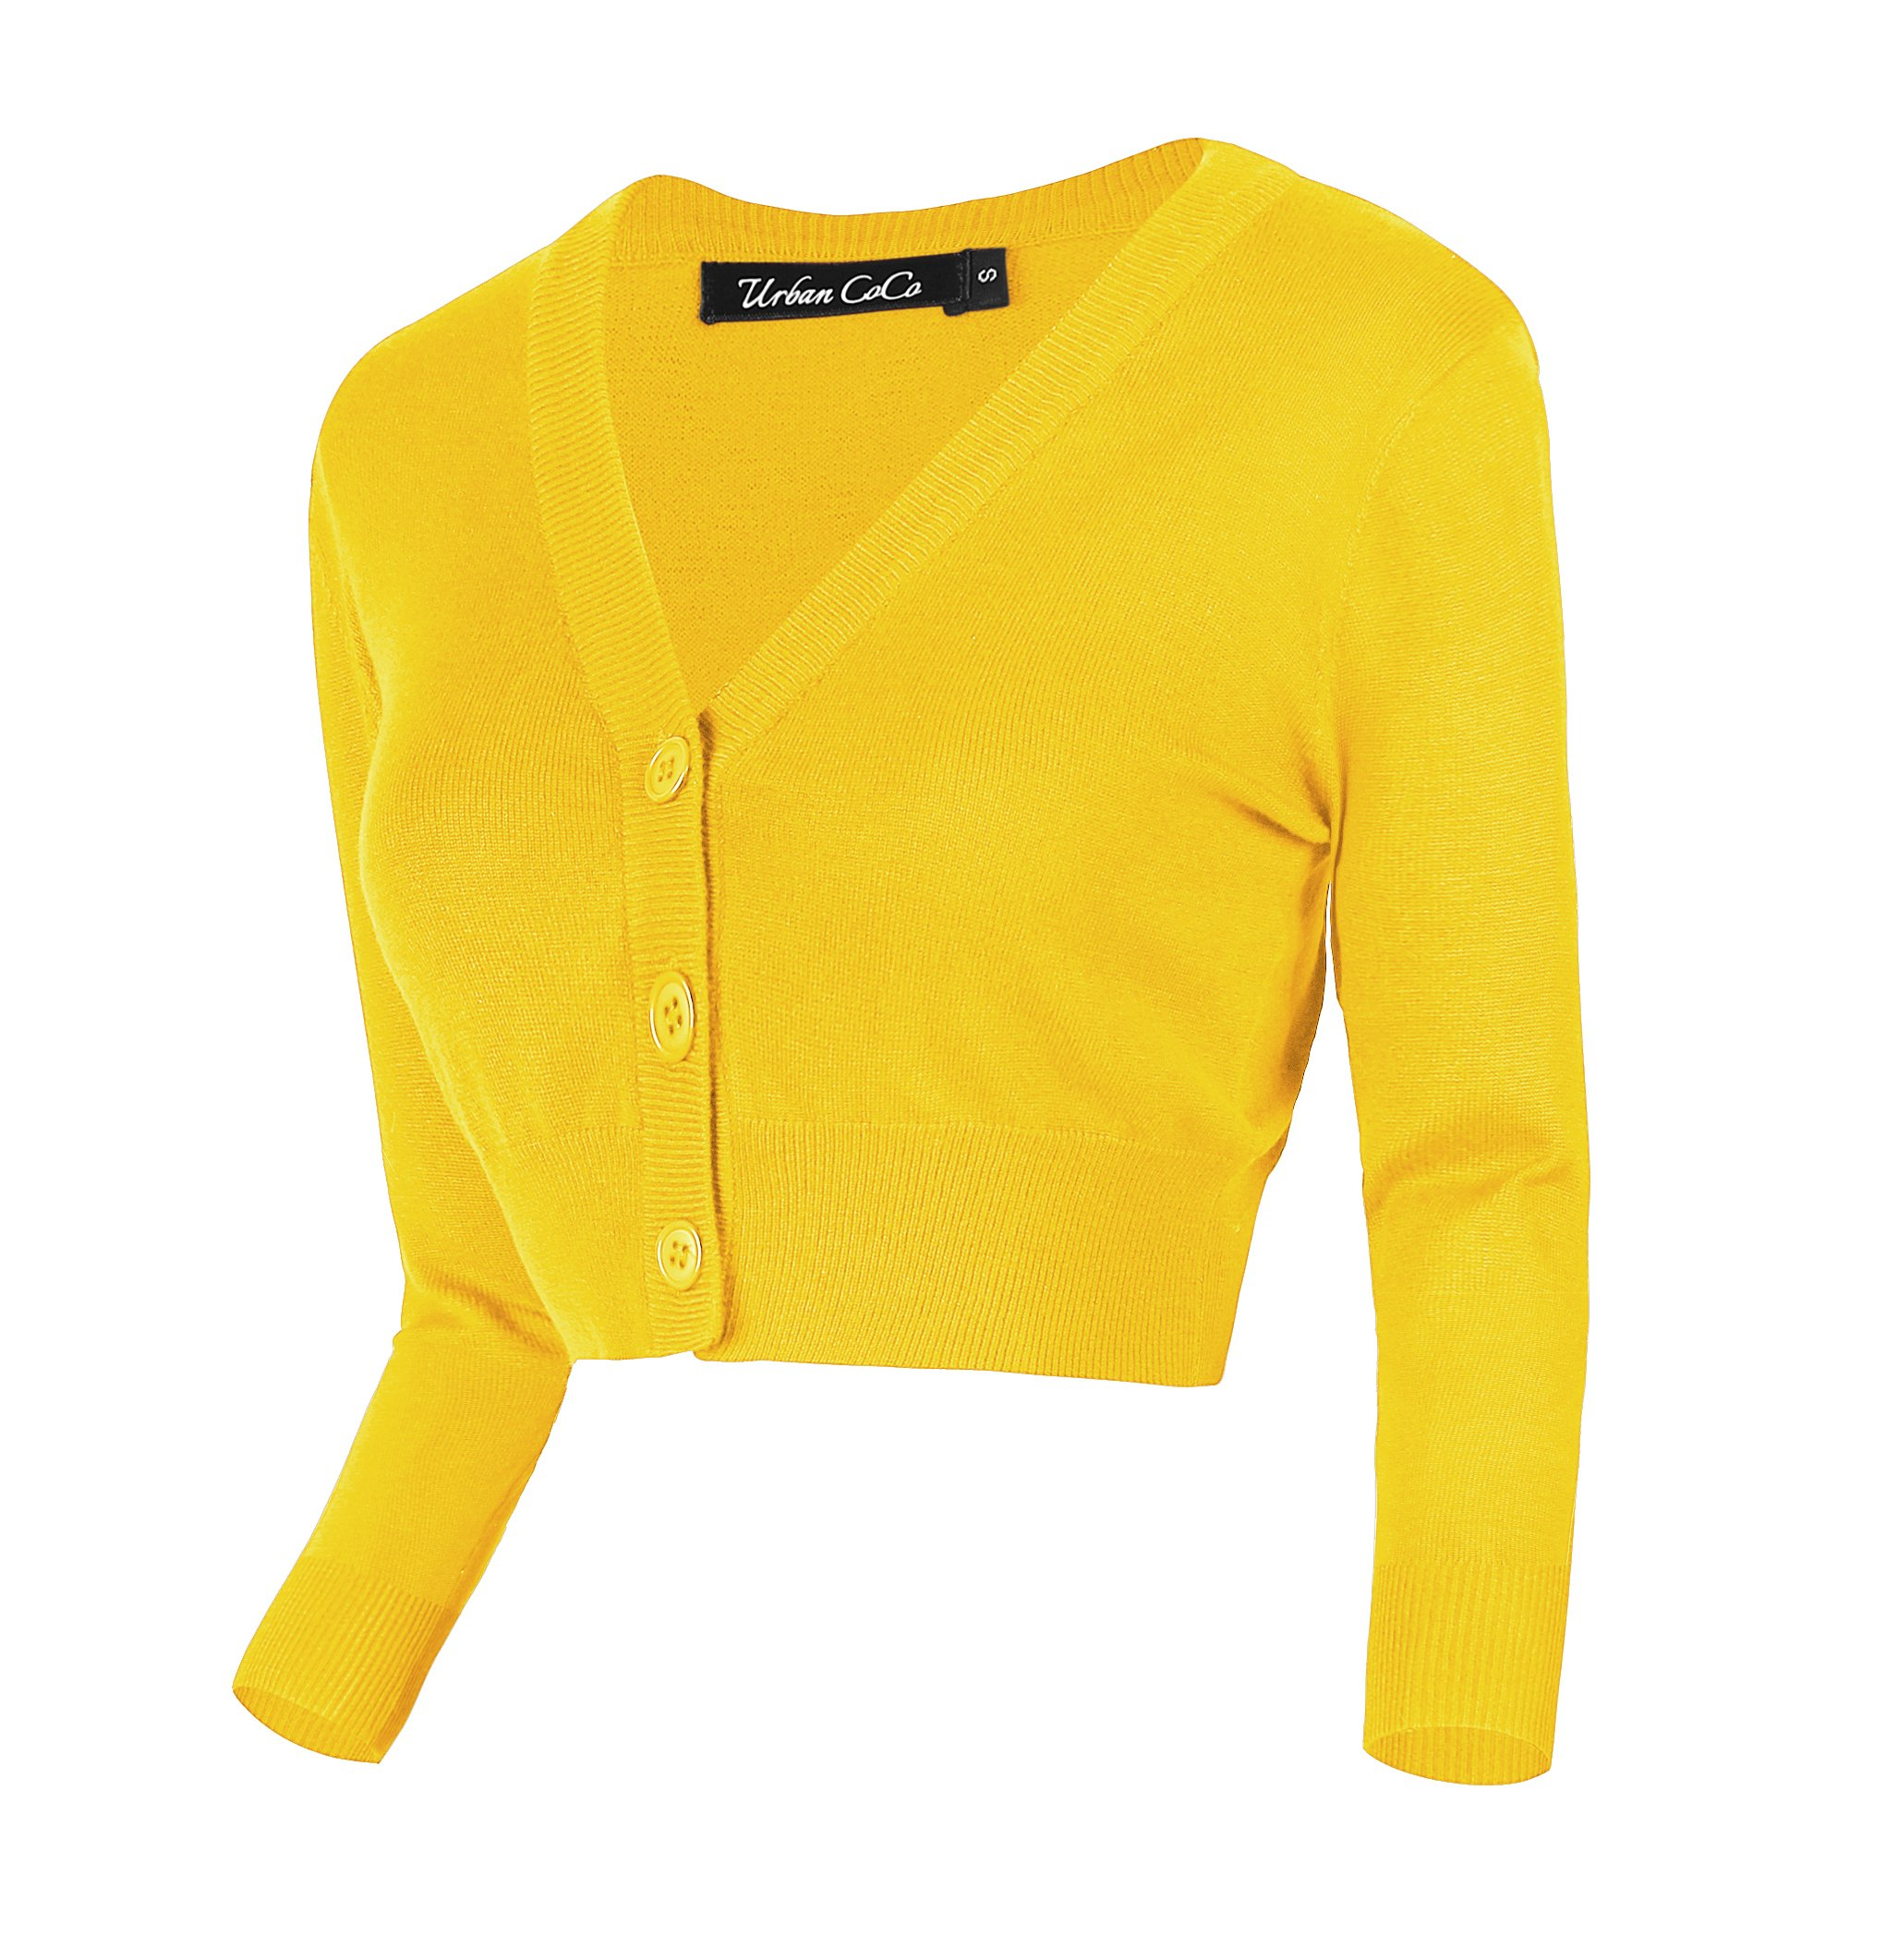 Urban CoCo Women's Cropped Cardigan V-Neck Button Down Knitted Sweater 3/4 Sleeve (M, Lemon Yellow)